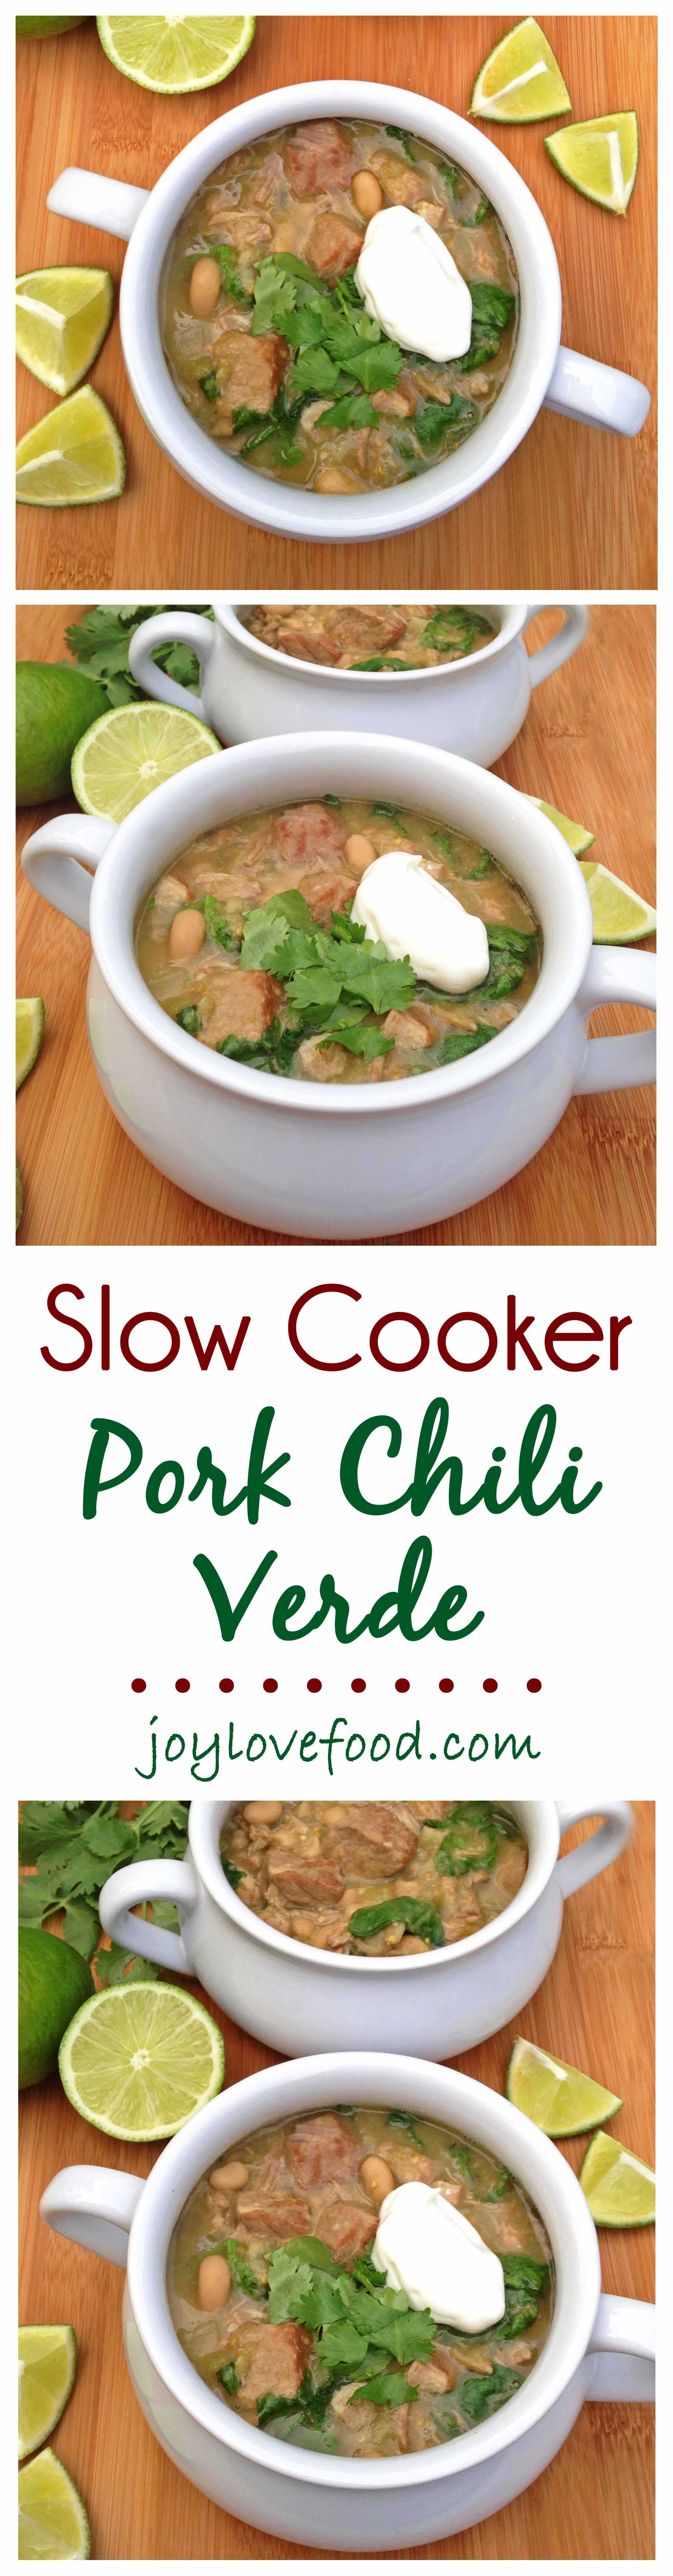 How to make The Best Slow Cooker Pulled Pork! Everyone is sure to love this amazing slow cooker pulled pork. The perfect blend of spices make it tender and so flavorful. How to make The Best Slow Cooker Pulled Pork is a big claim but I can tell you I've tried a lot of pulled pork recipes and.